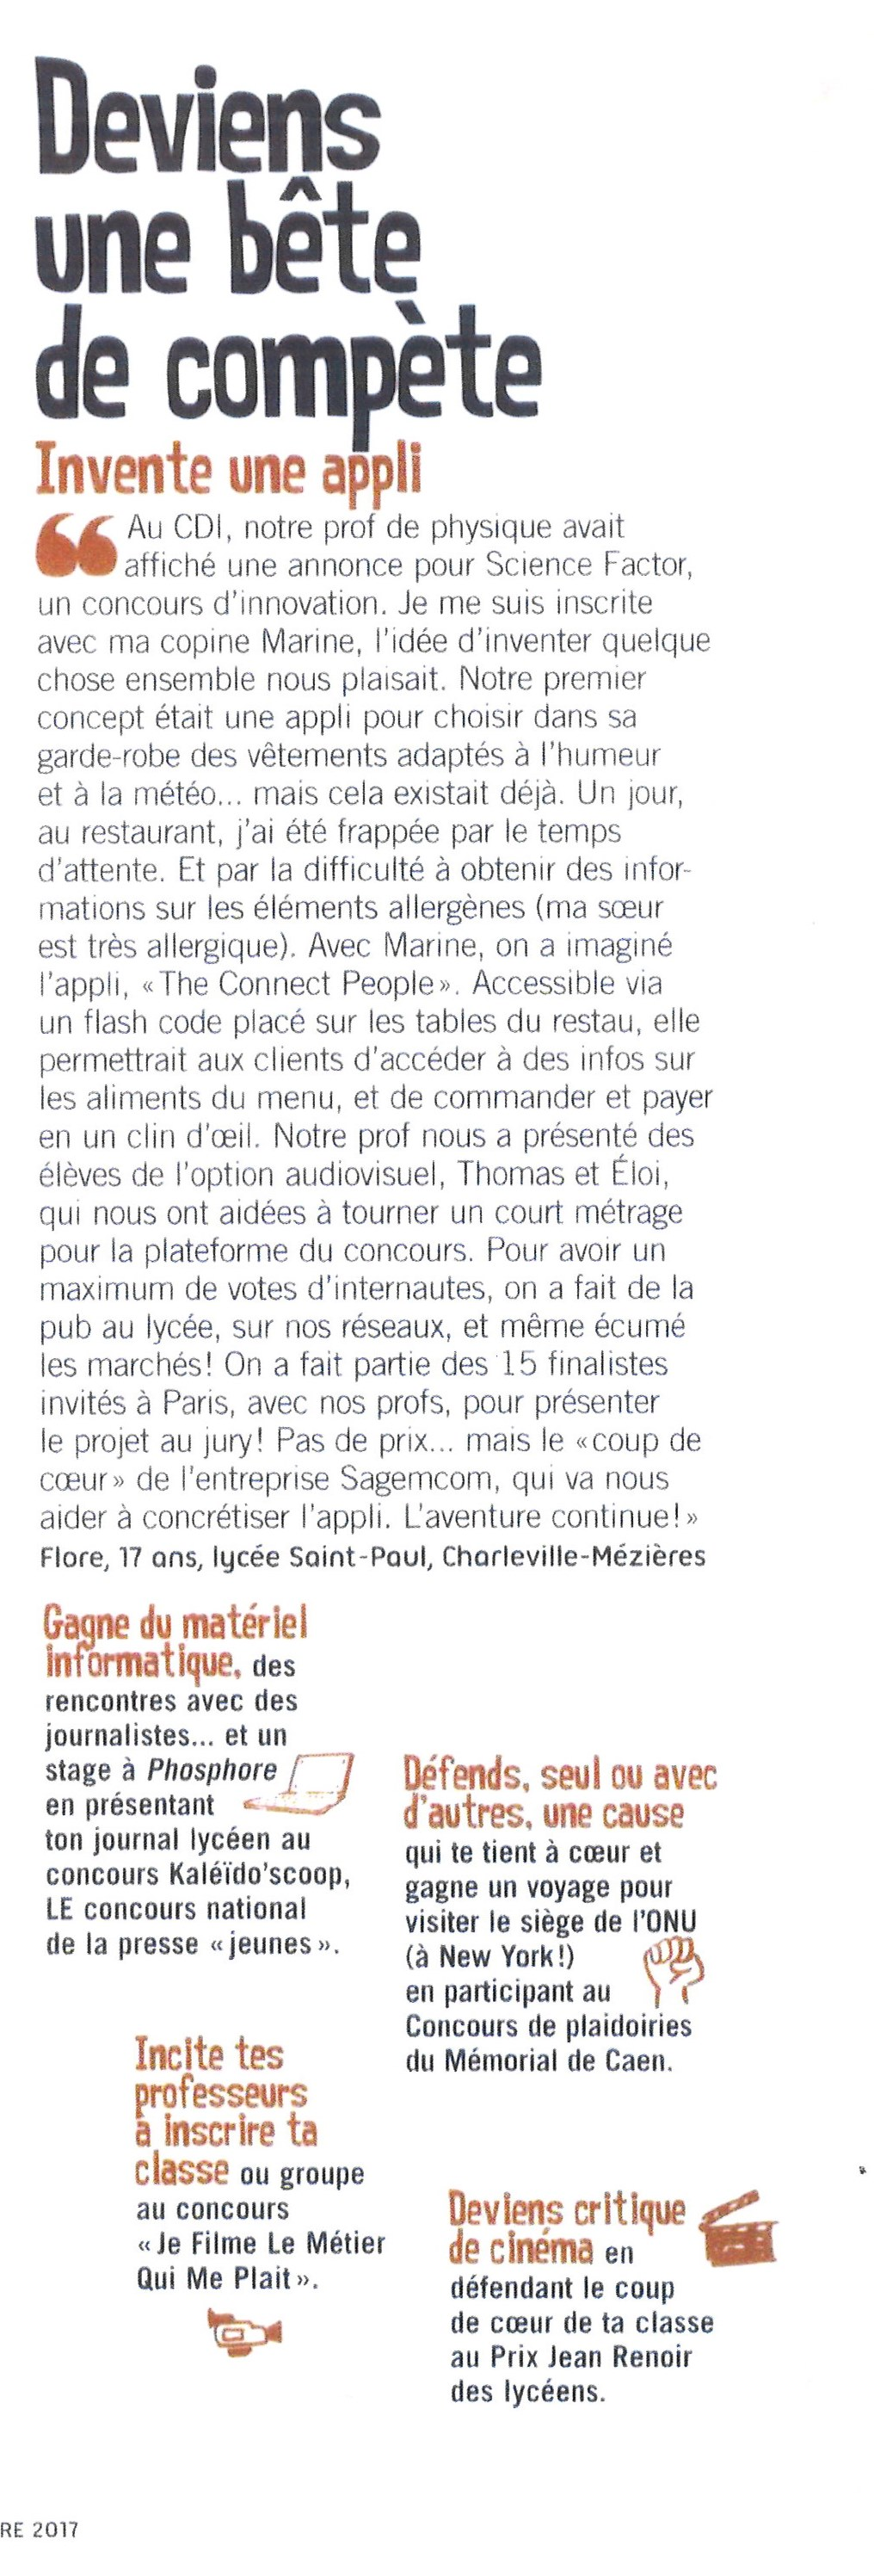 Phosphore - Science factor